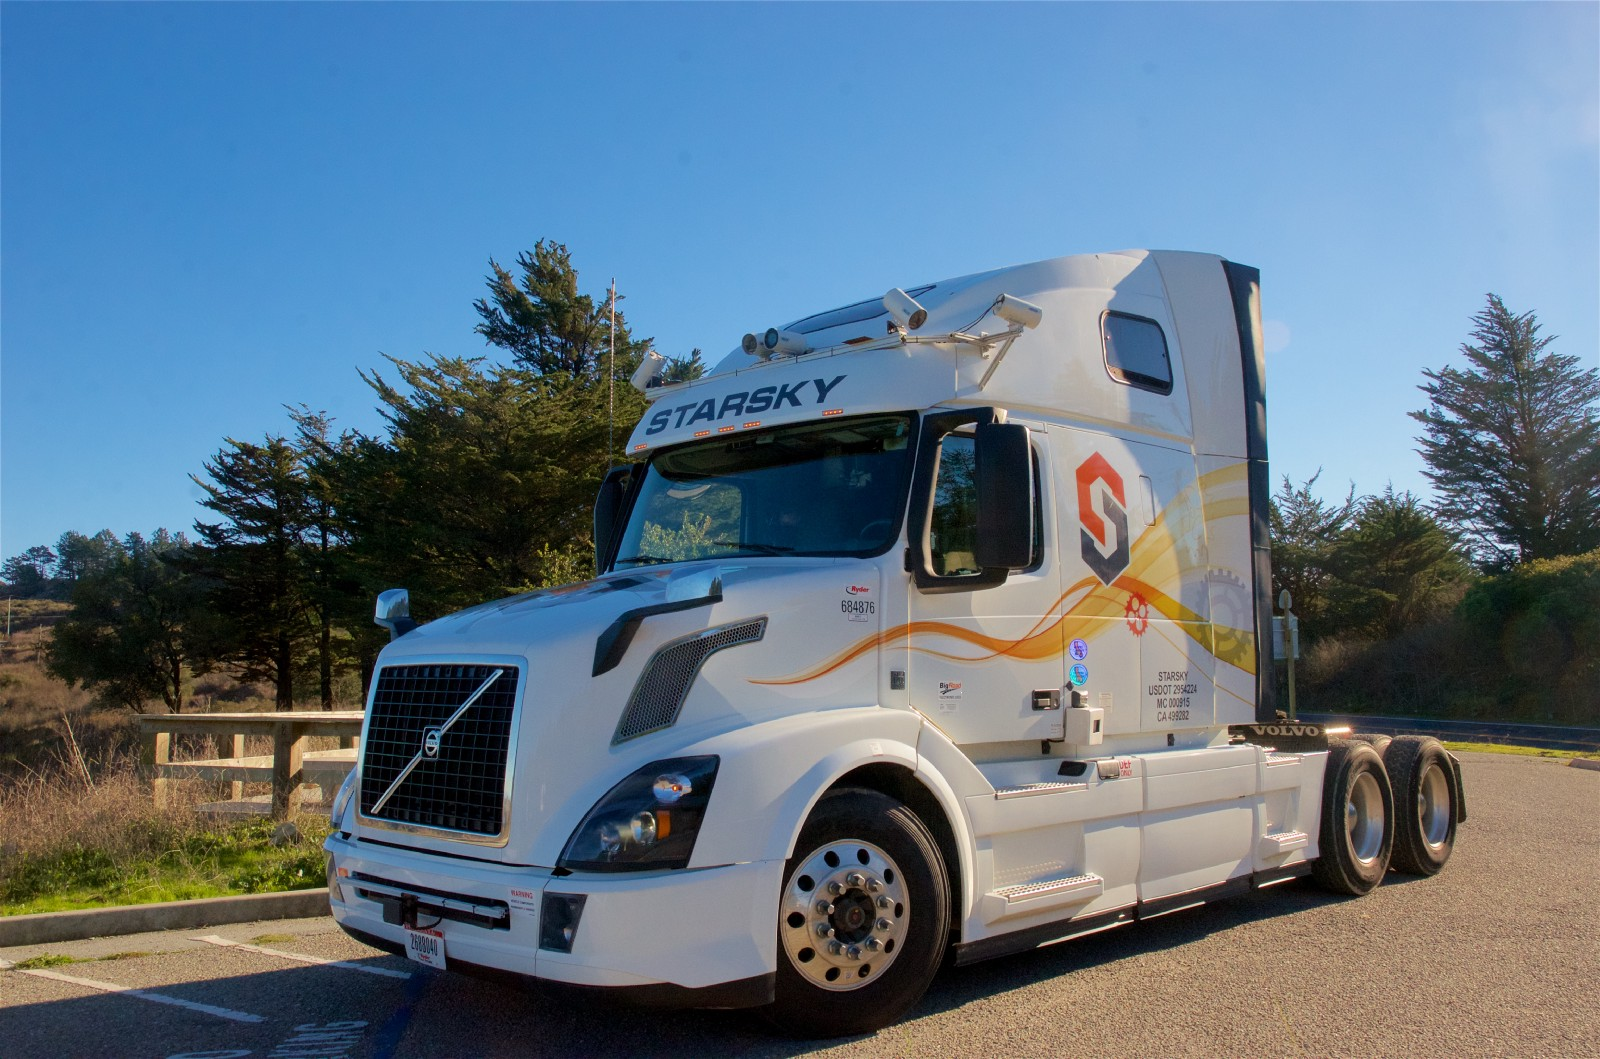 Starsky Robotics Tests Autonomous Truck on Florida Highway